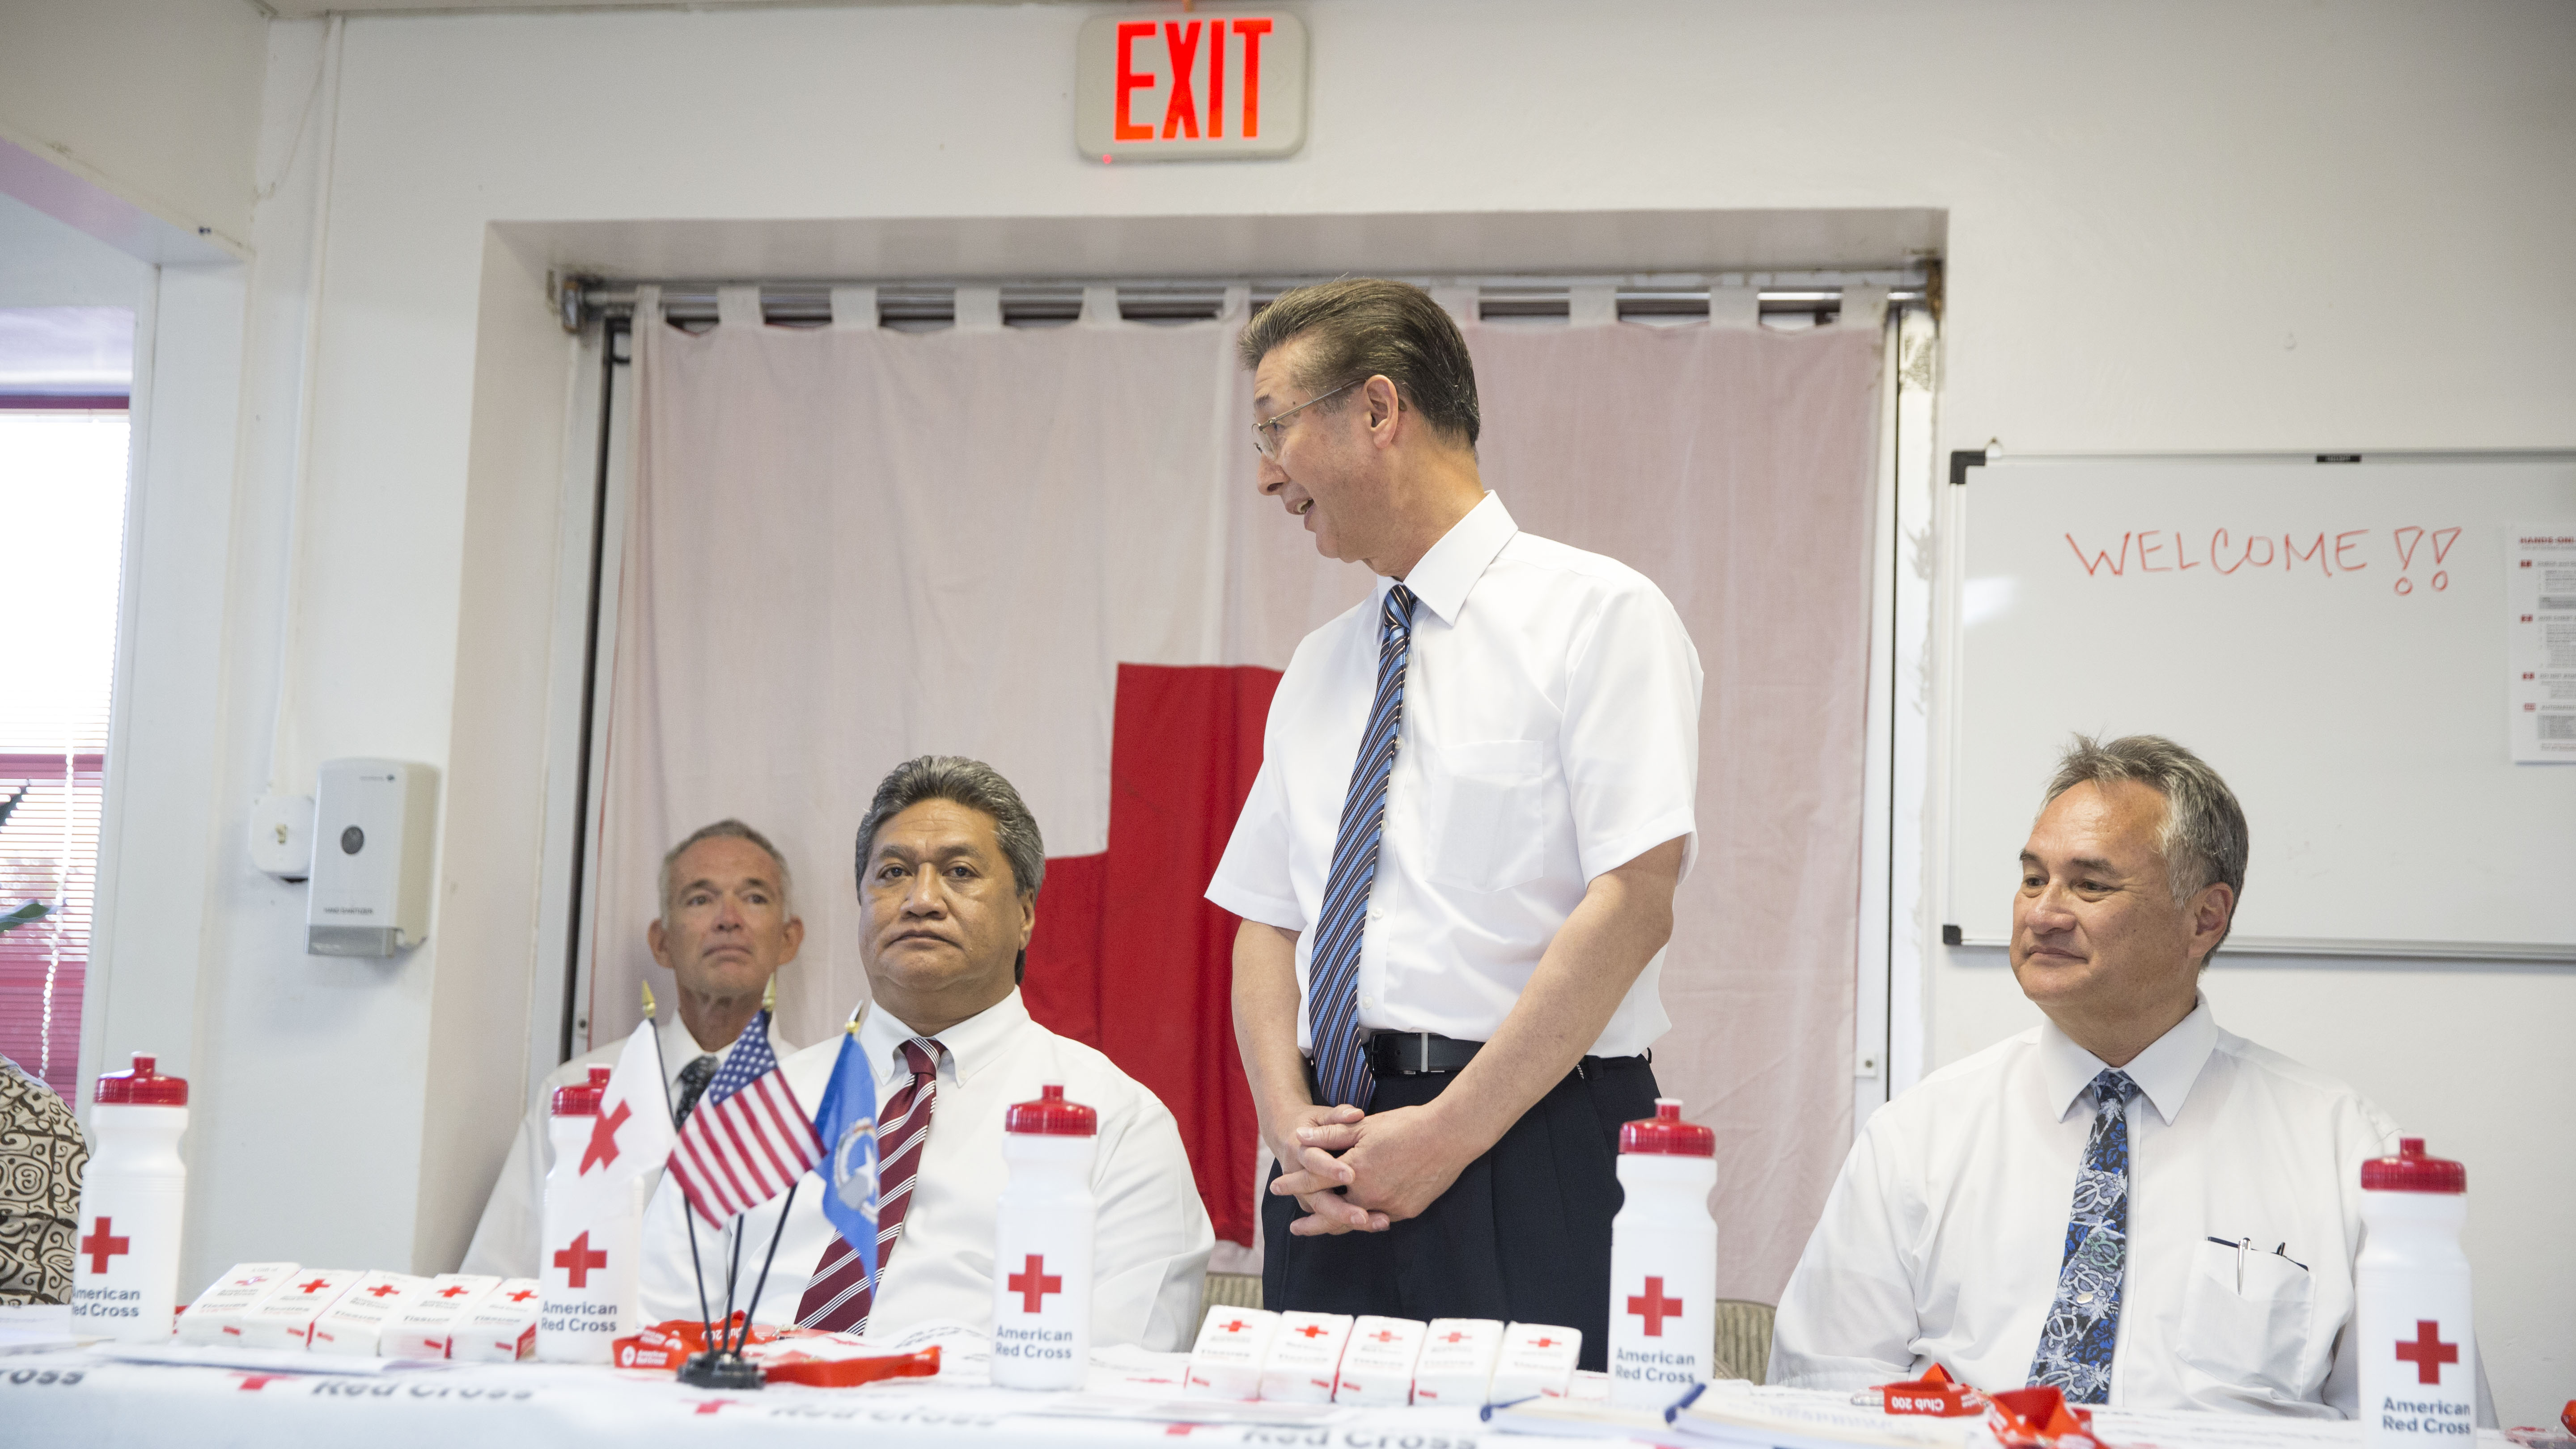 Area leaders of The Church of Jesus Christ of Latter-day Saints join with the Red Cross to discuss Typhoon Yutu recovery efforts with the media in Saipan, Thursday, Jan. 24, 2019. From left to right: Valrick Welch, Saipan Ward bishop; Diego Sablan of the Barrigada Guam Stake Presidency; Elder Kazuhiko Yamashita, Asia North Area presidency; and Elder Bill Davis, an Area Seventy.